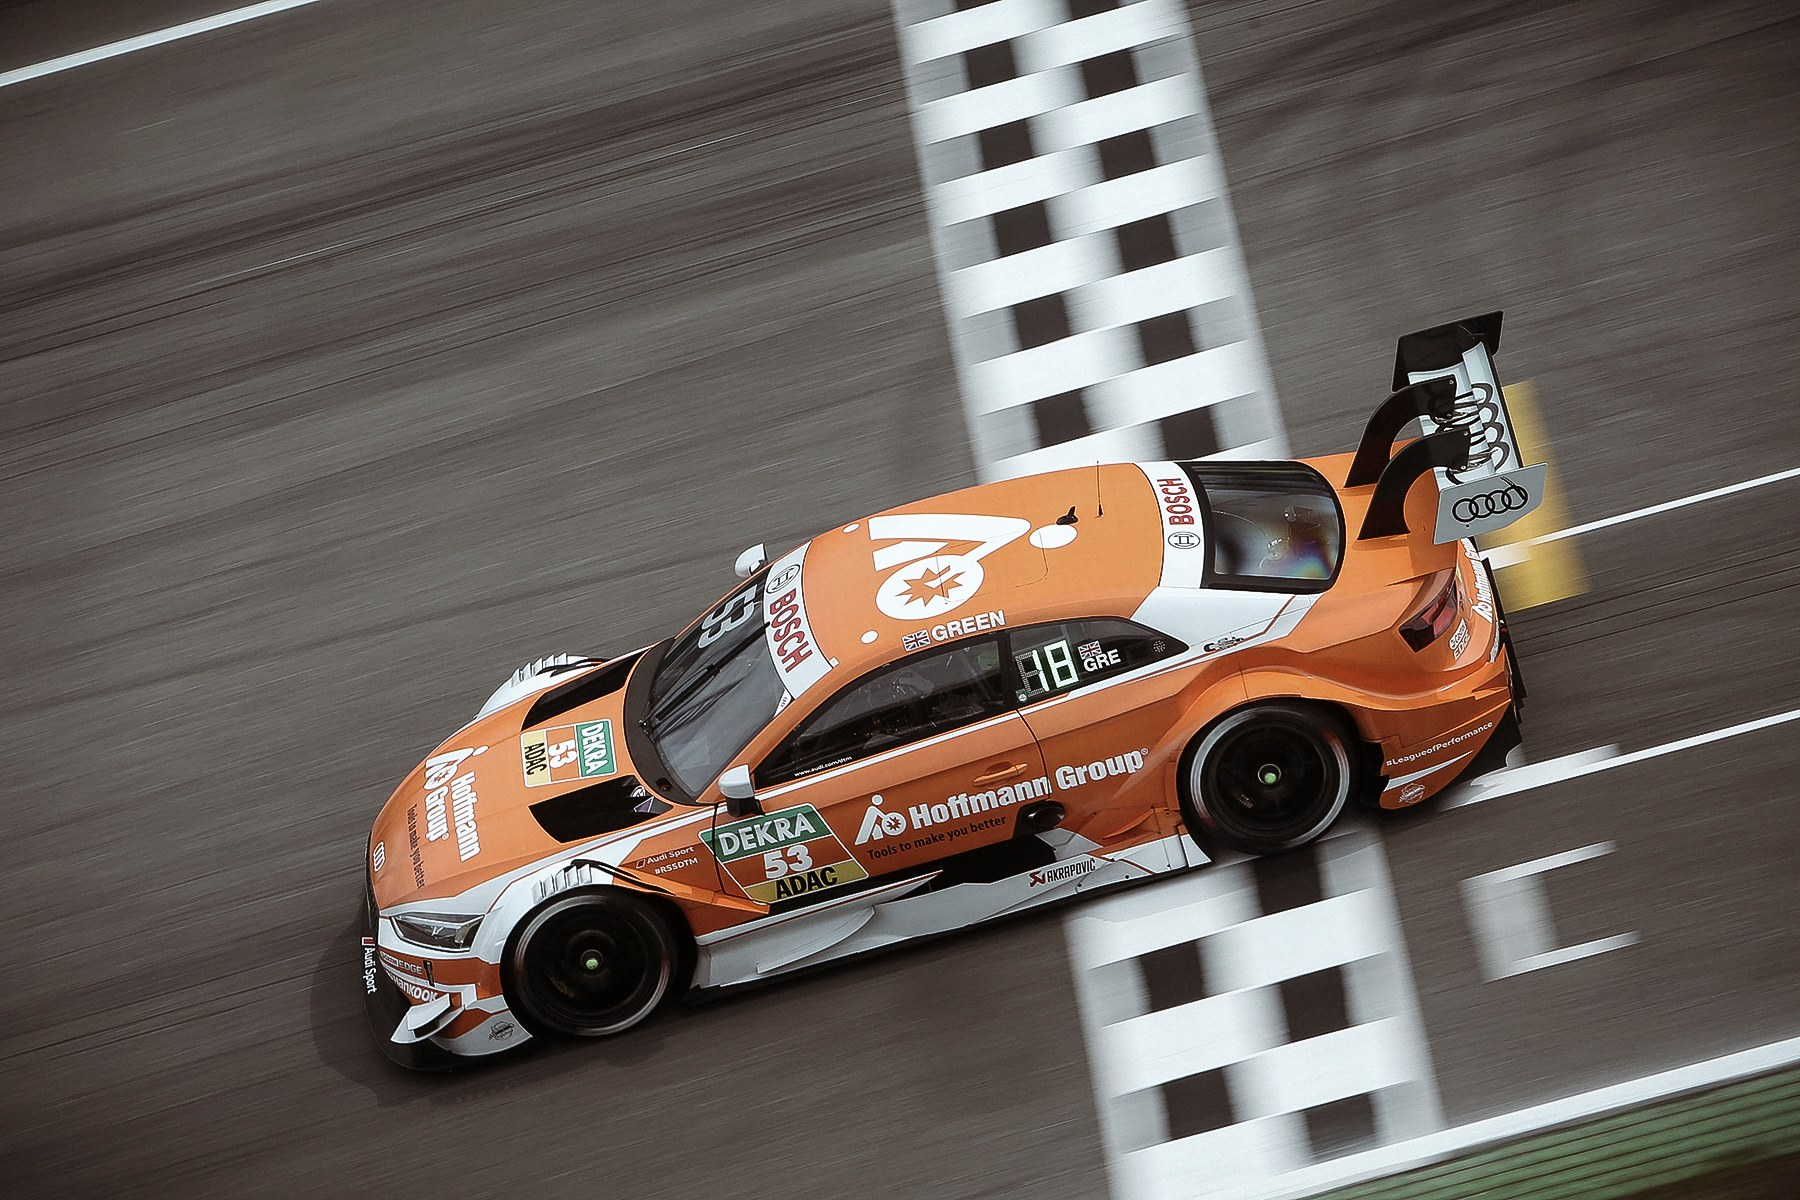 DTM: Auer and Green Victorious at Hockenheim Season Opener